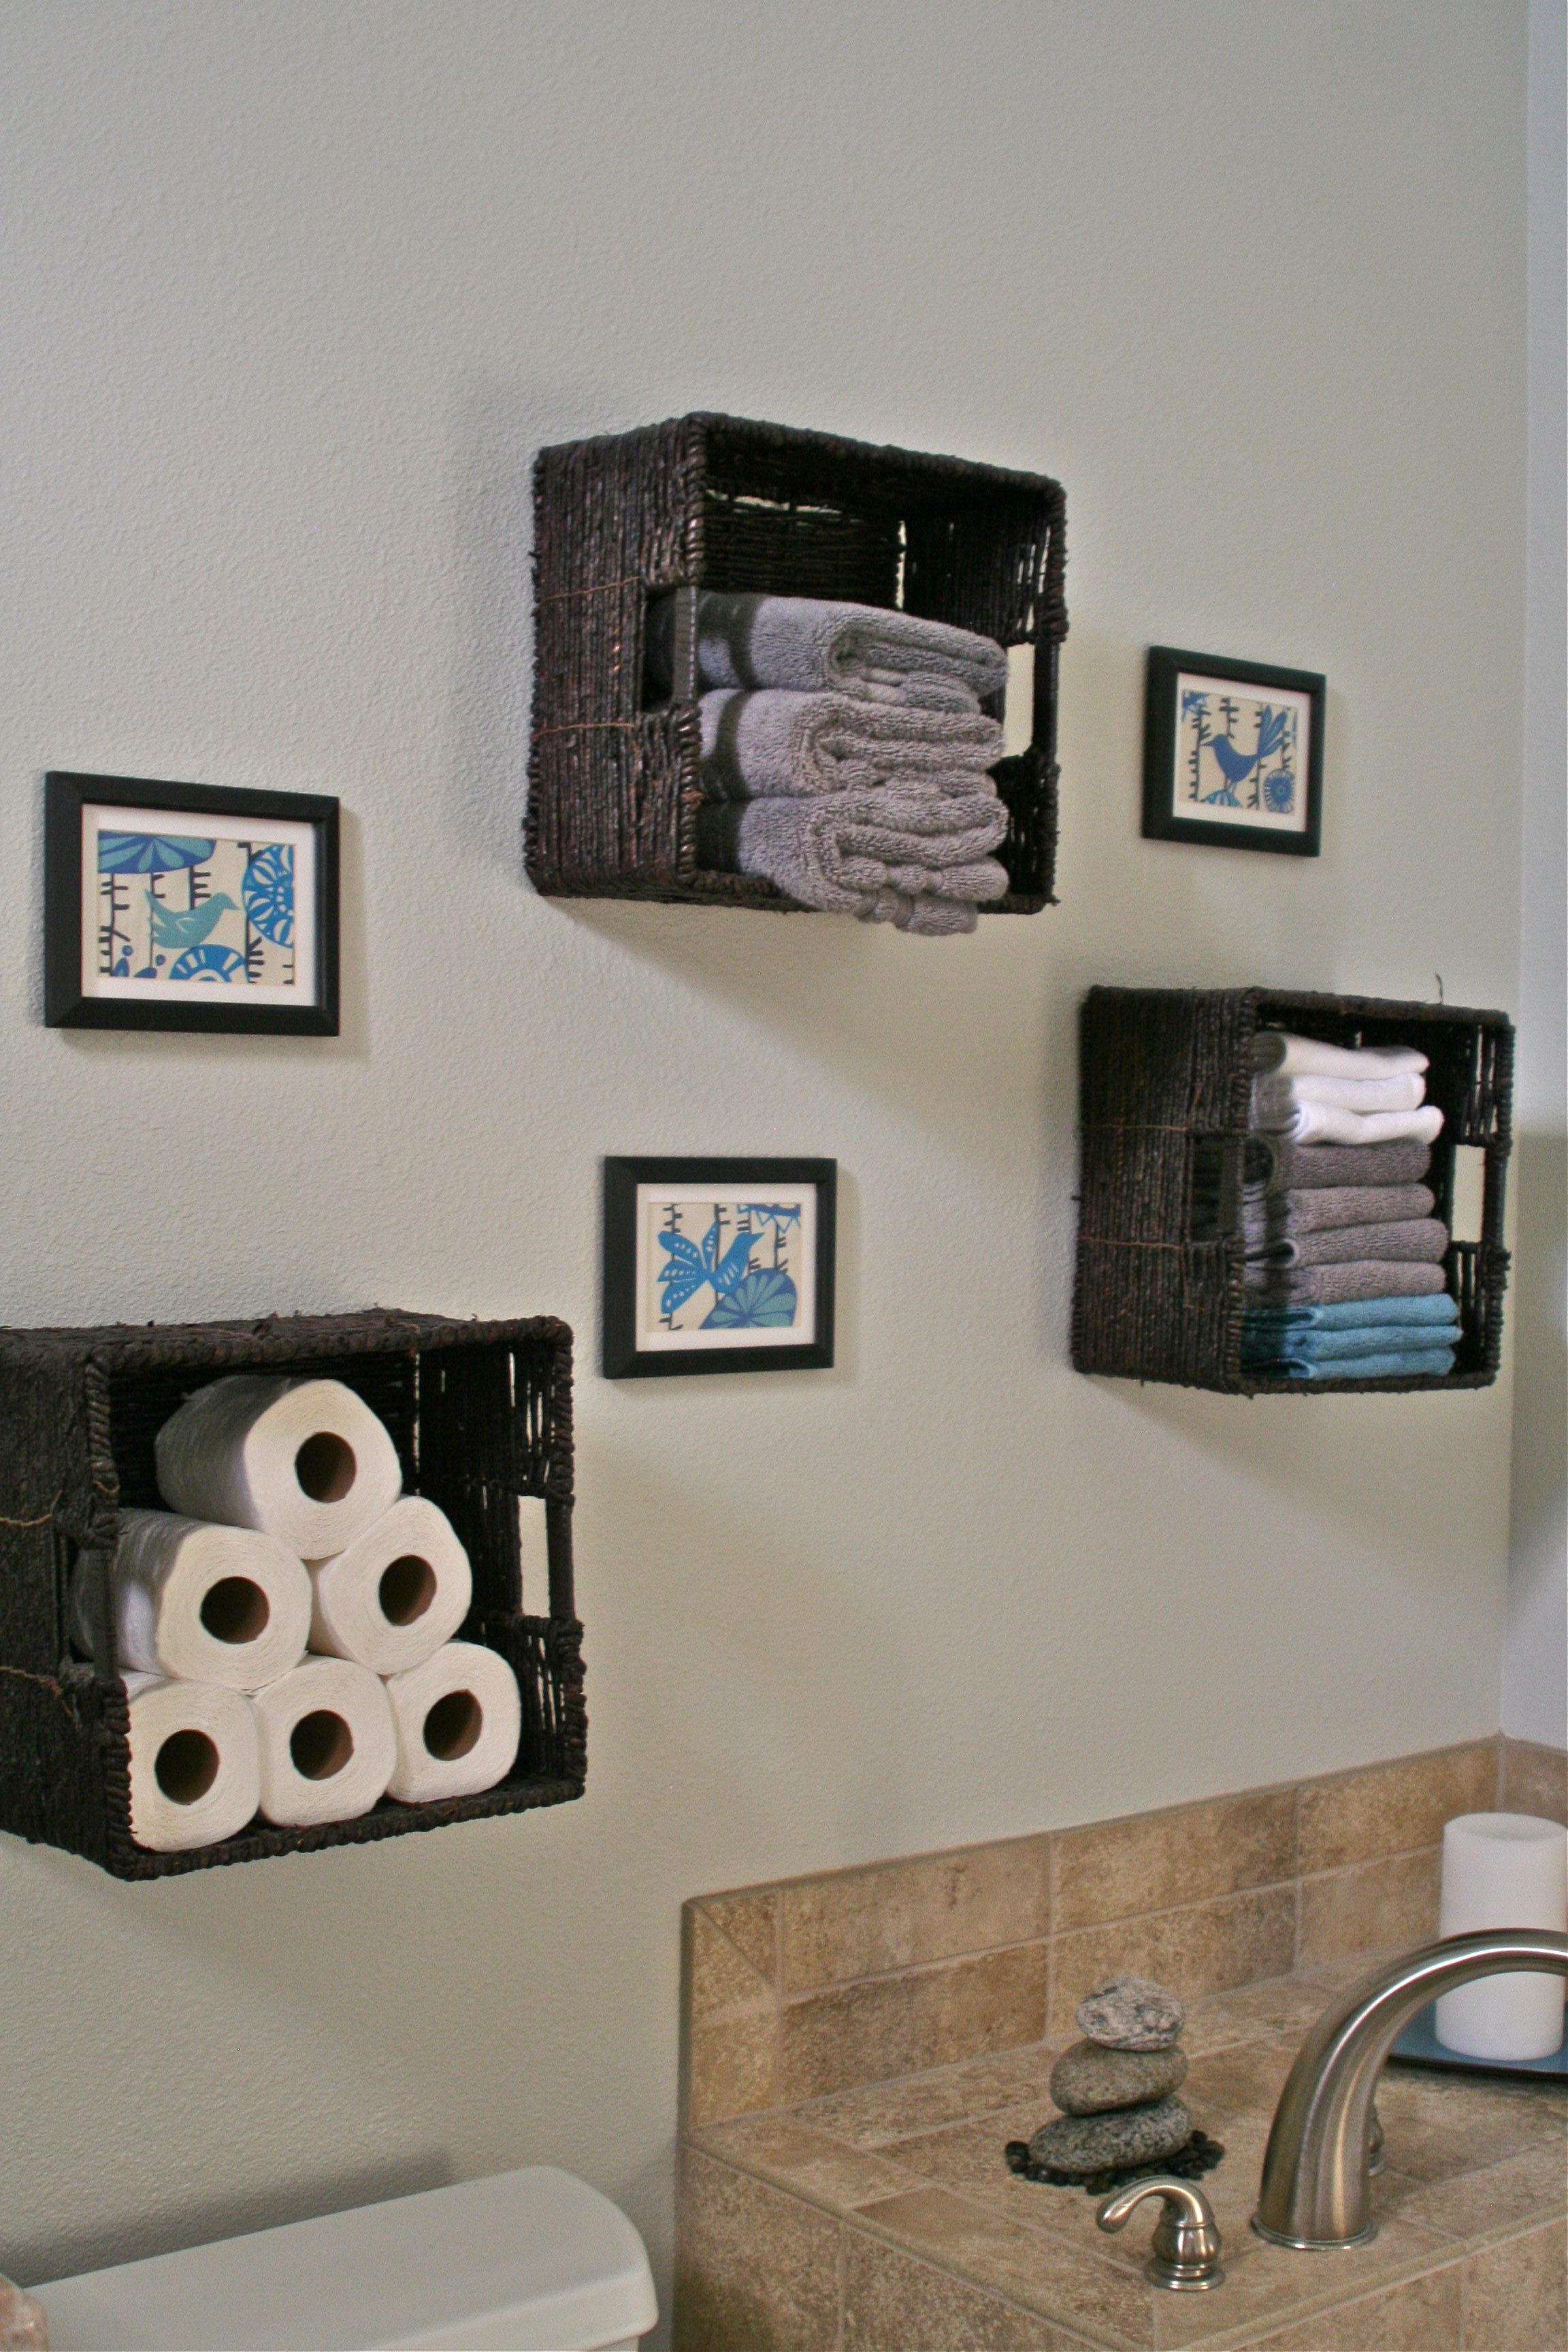 Bathroom Storage Baskets For Towels Toilet Paper Etc Love within proportions 2304 X 3456